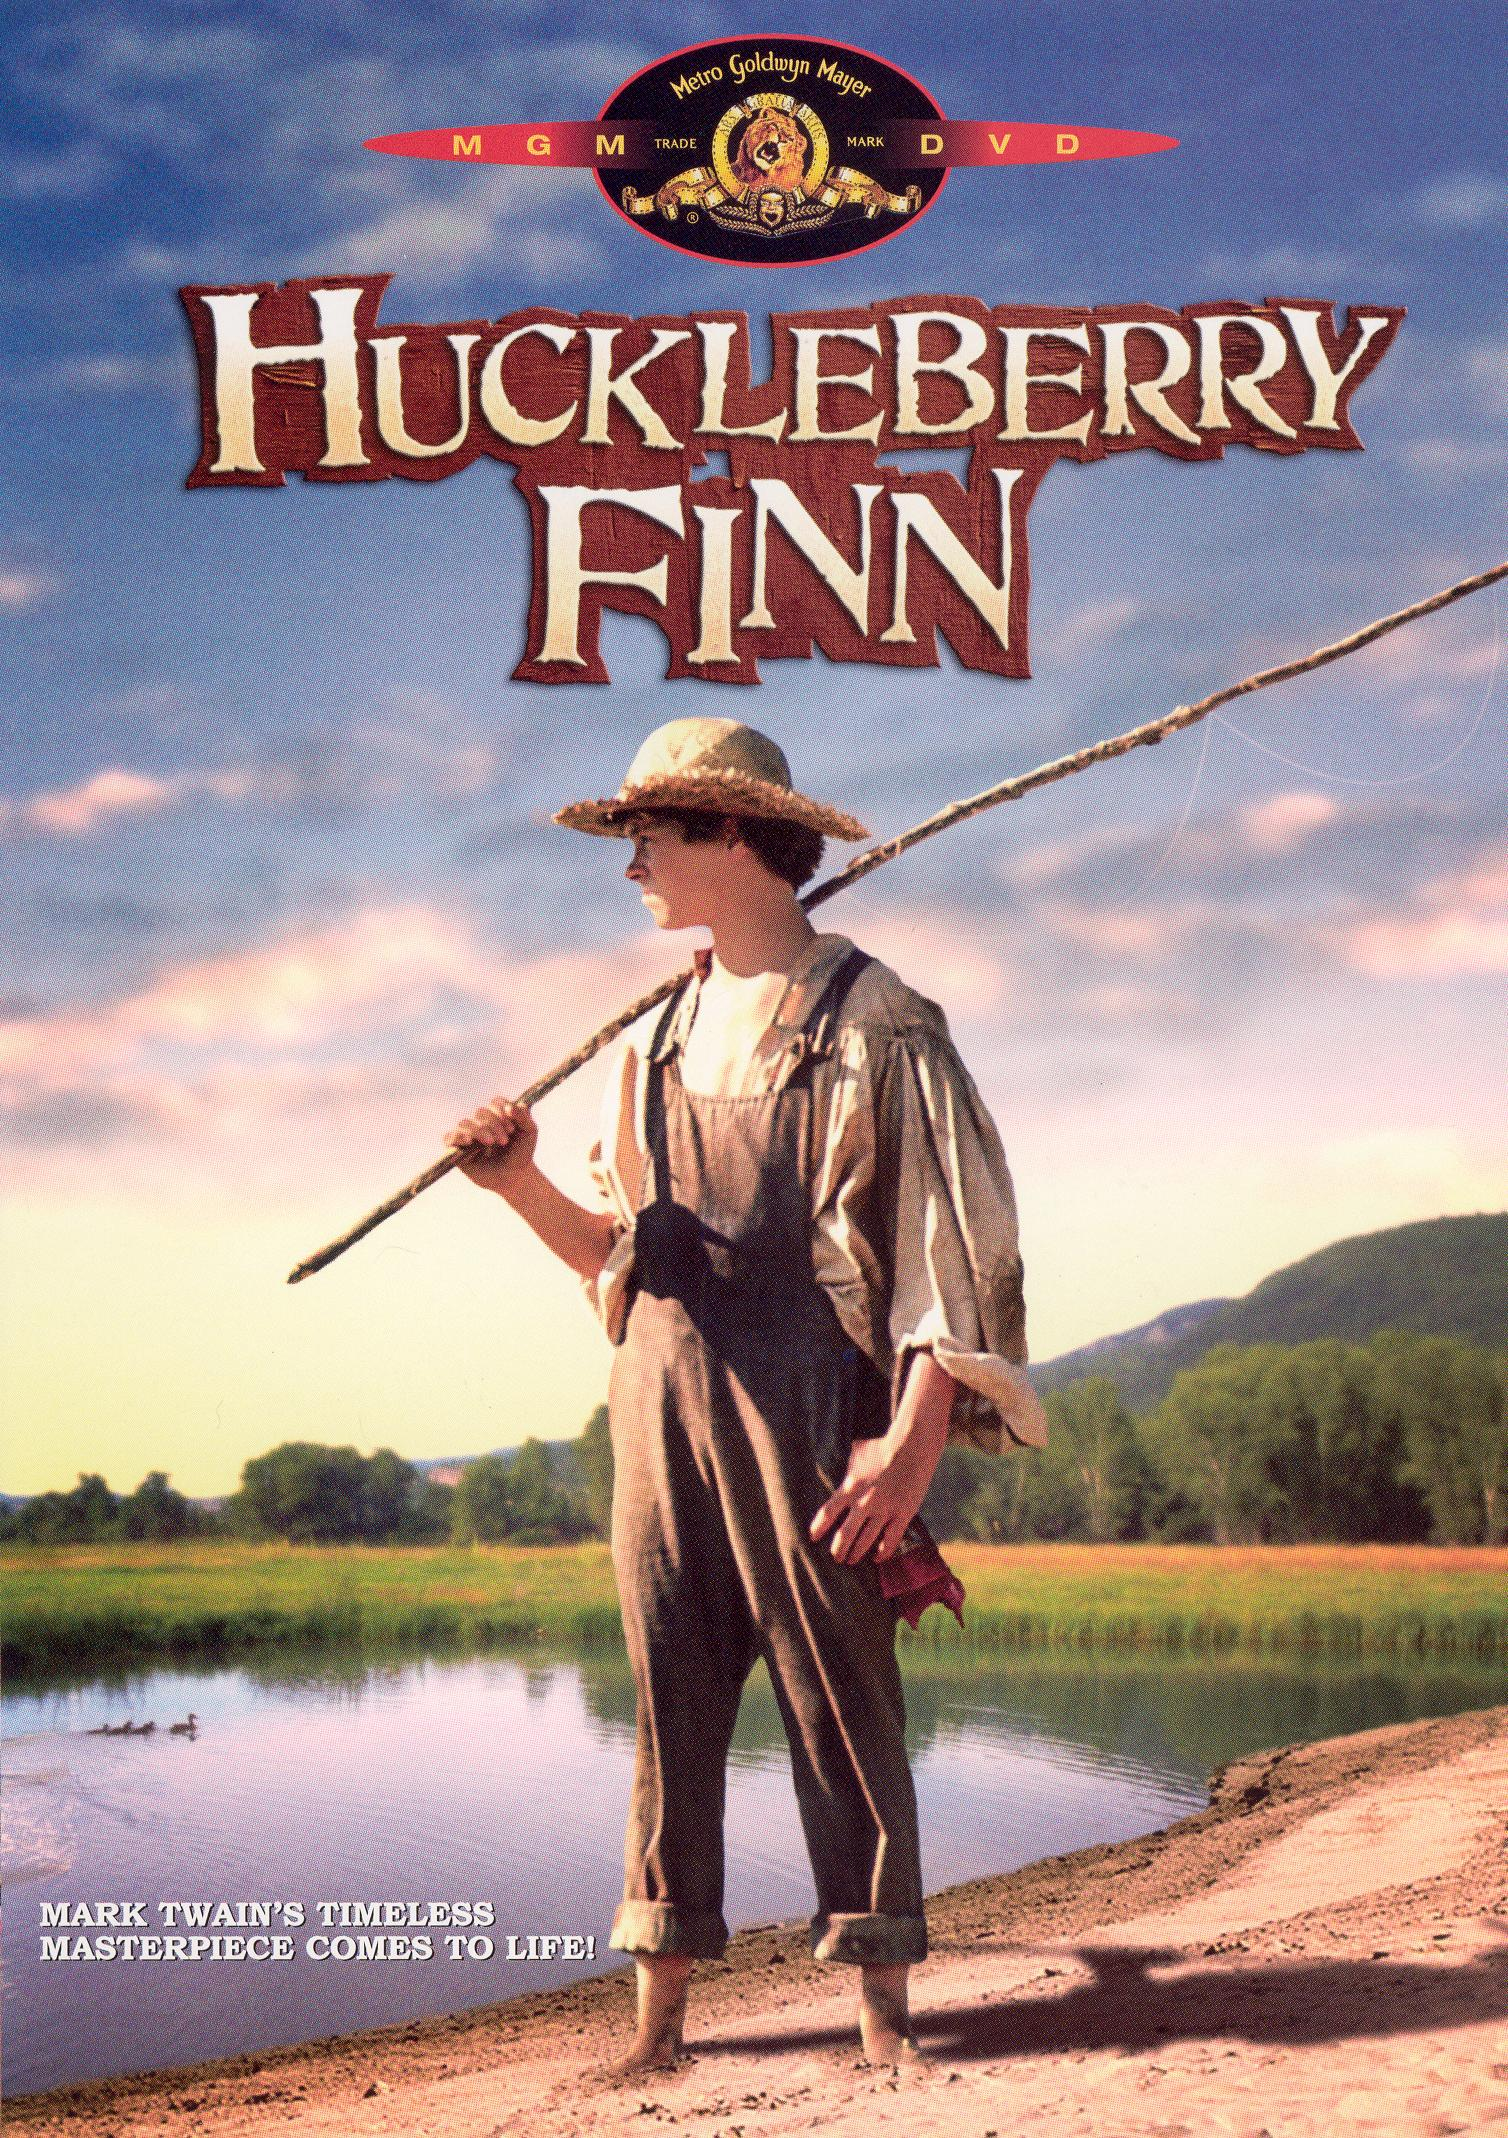 a review of the end of mark twains huckleberry finn The adventures of tom sawyer and adventures of huckleberry finn by  finn is the sequel novel to mark twains,  adventures of tom sawyer, by mark.